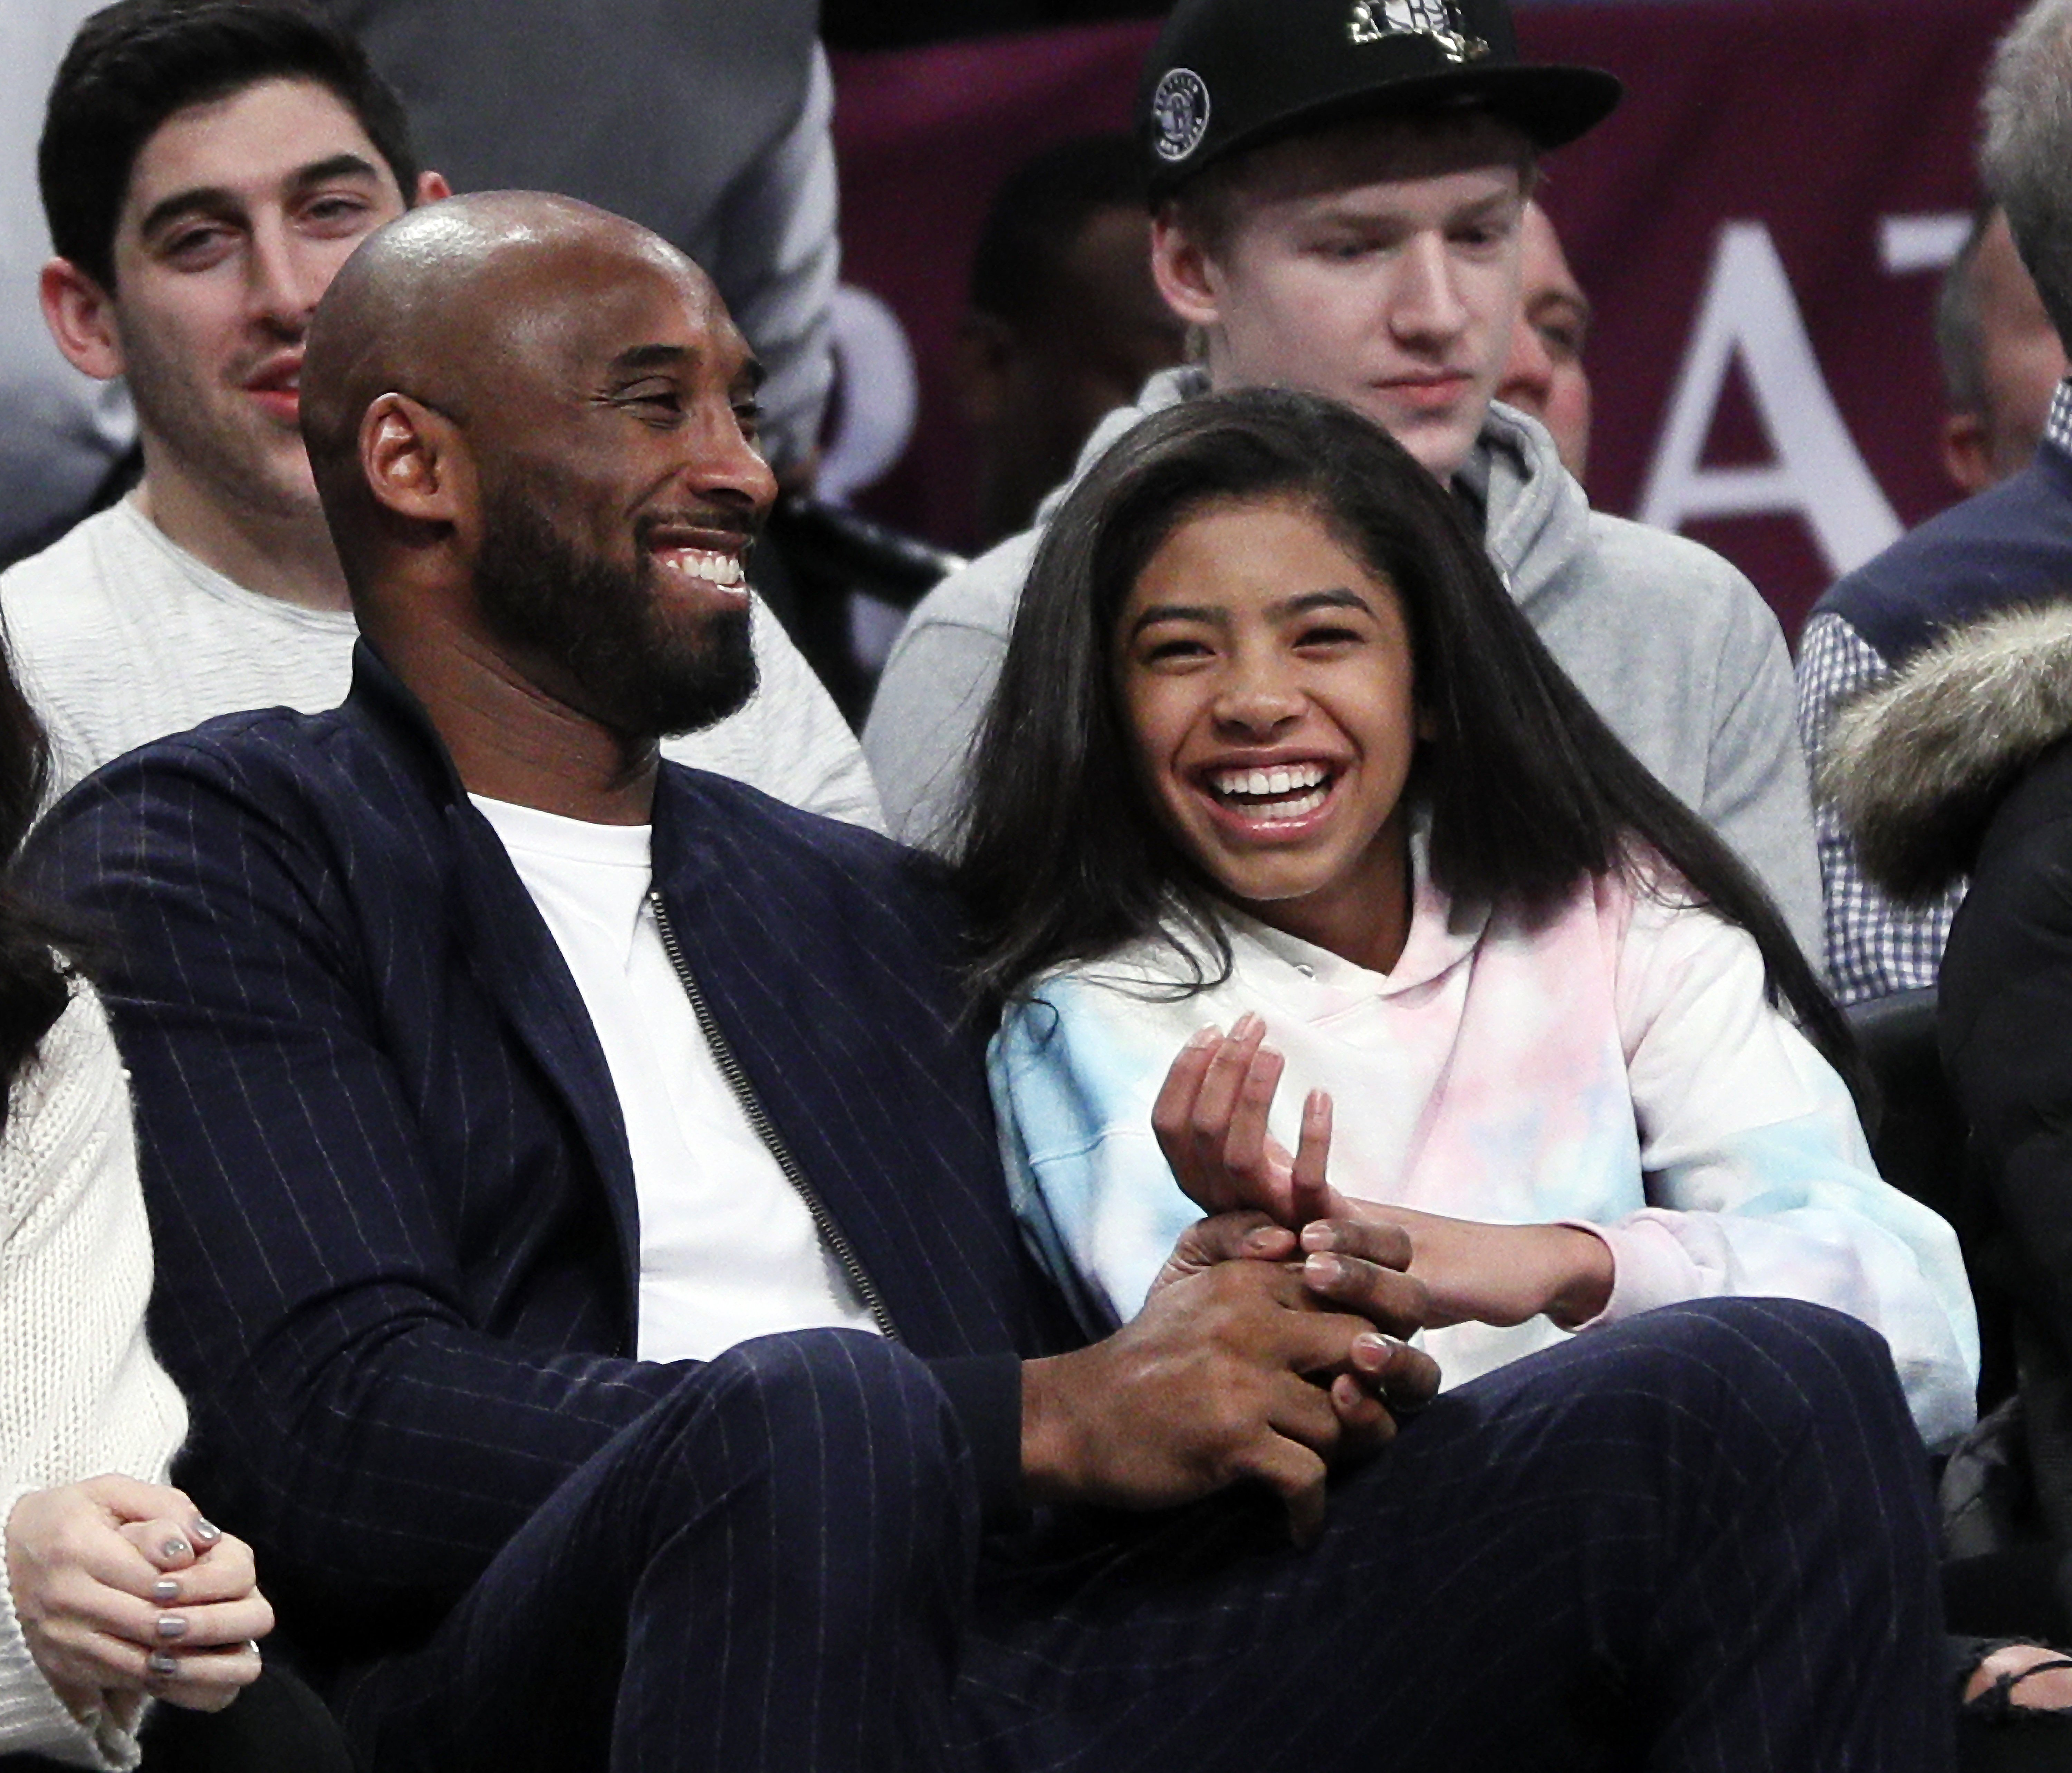 Kobe Bryant and his daughter Gigi, watch an NBA basketball game between the Brooklyn Nets and Atlanta Hawks on December 21, 2019 | Photo: Getty Images